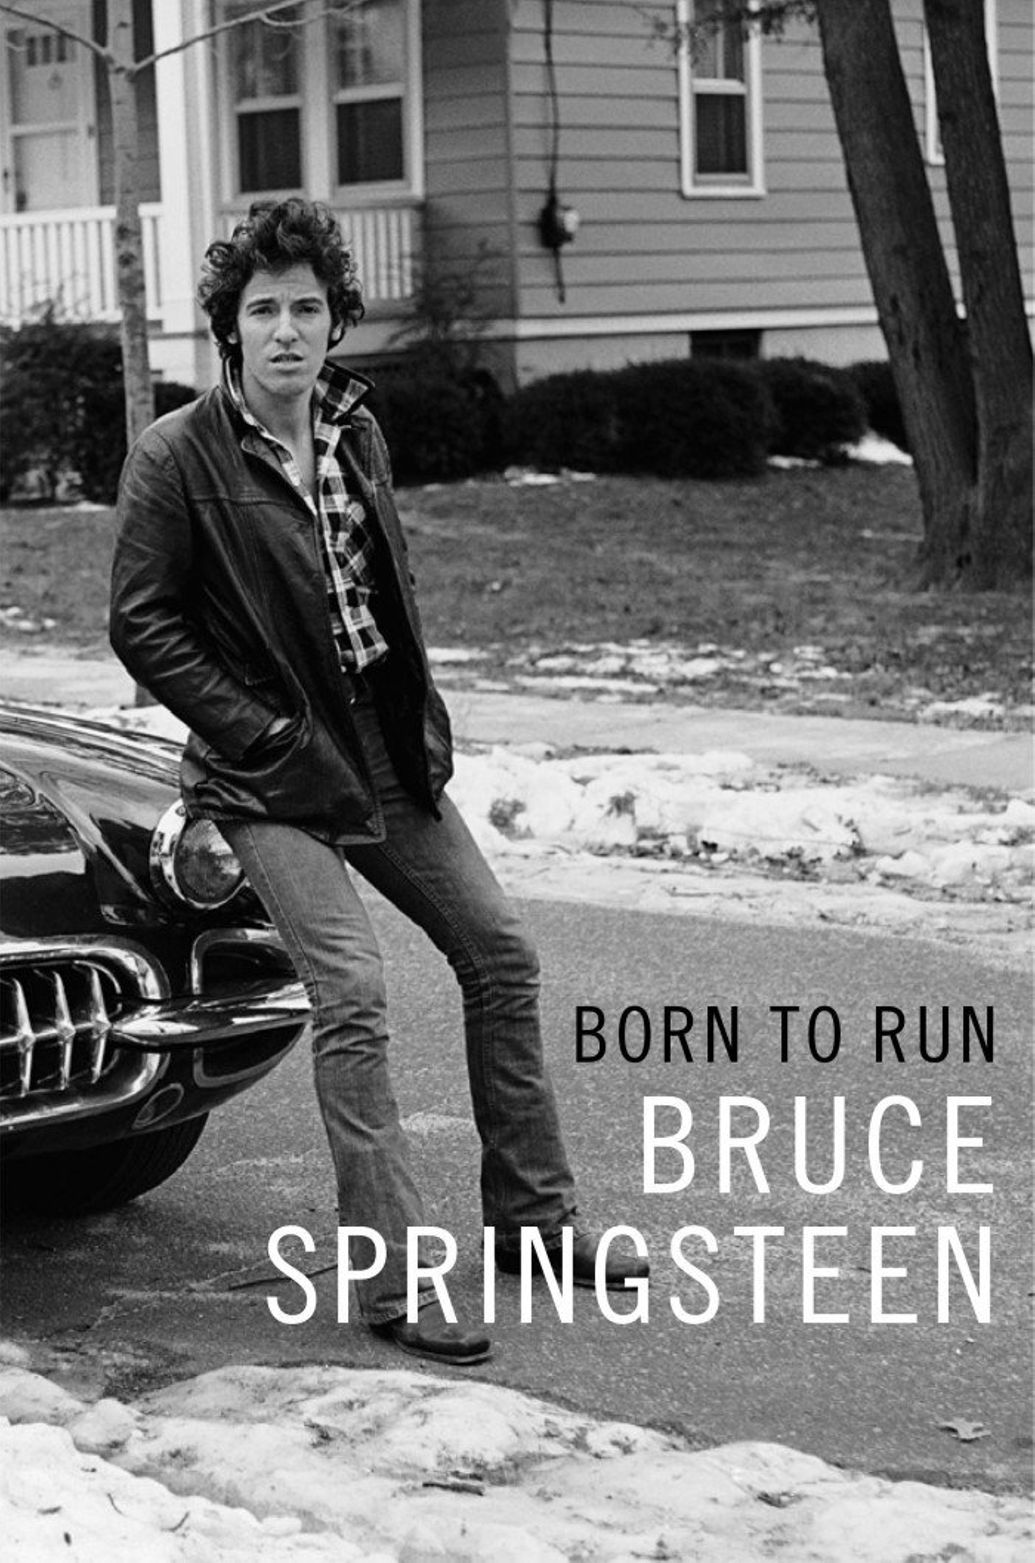 Bruce Springsteen gets $10 million for upcoming born-to-runaway bestseller